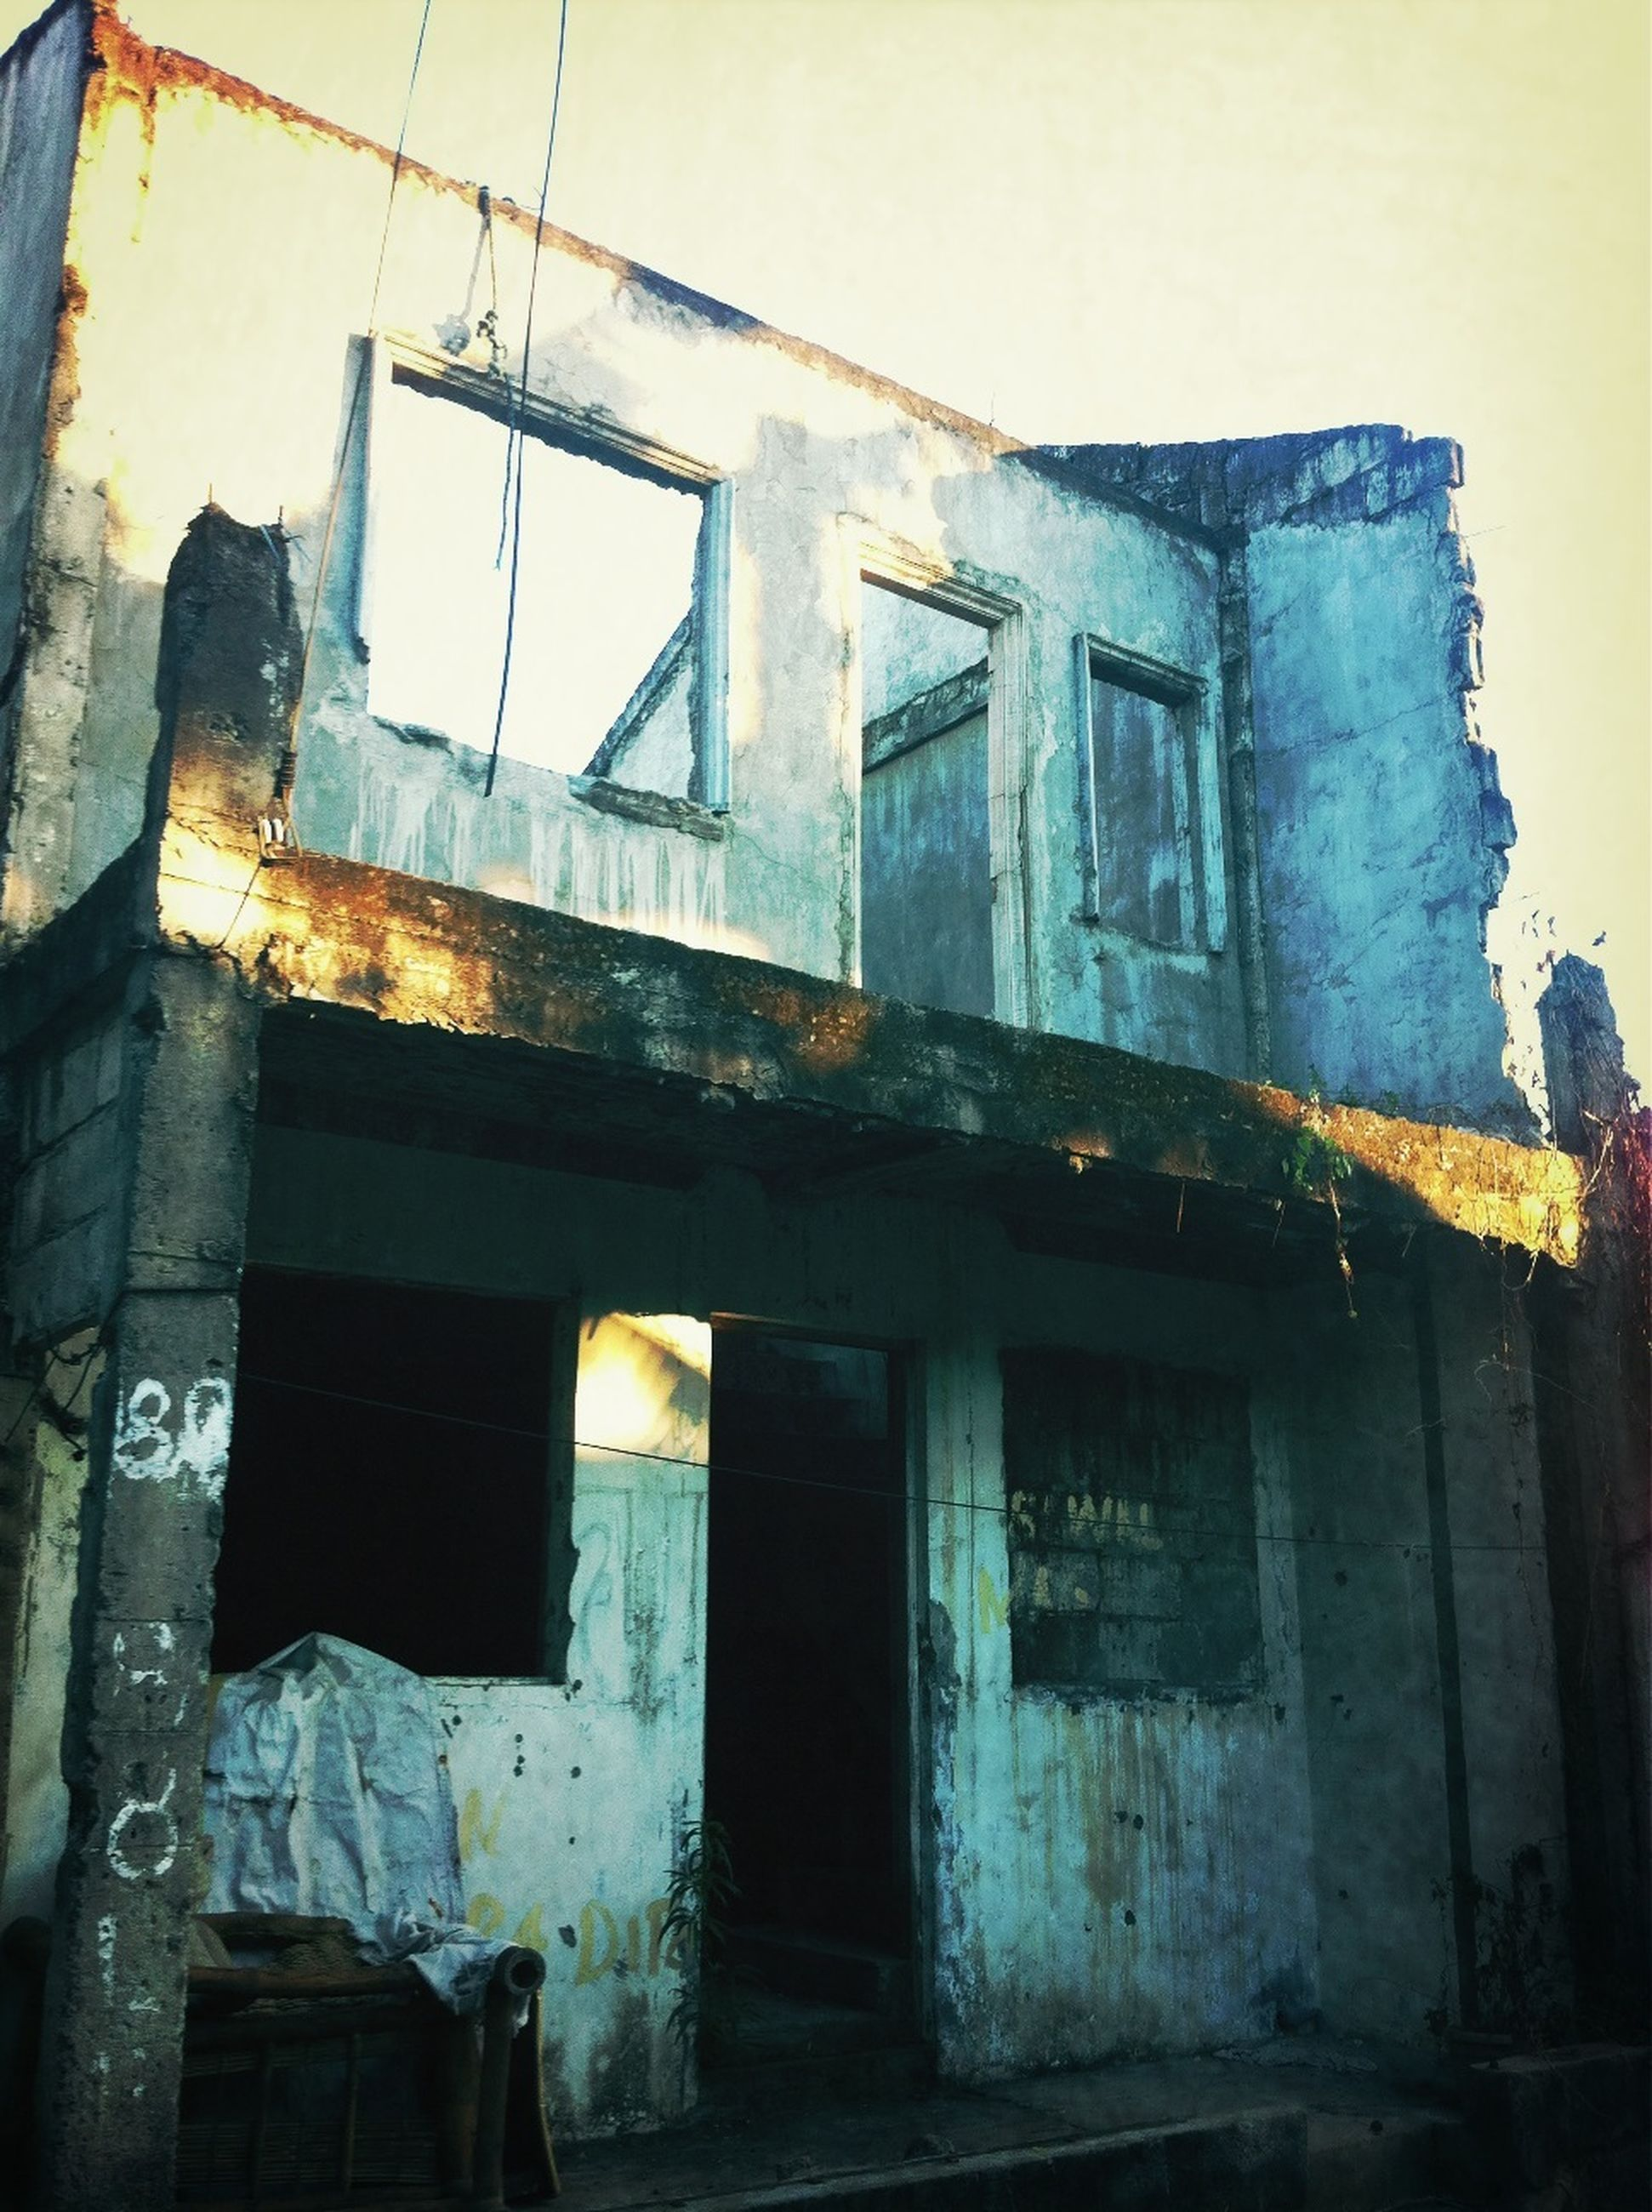 architecture, building exterior, built structure, window, abandoned, house, old, low angle view, damaged, obsolete, residential structure, residential building, weathered, run-down, deterioration, building, bad condition, door, sky, no people